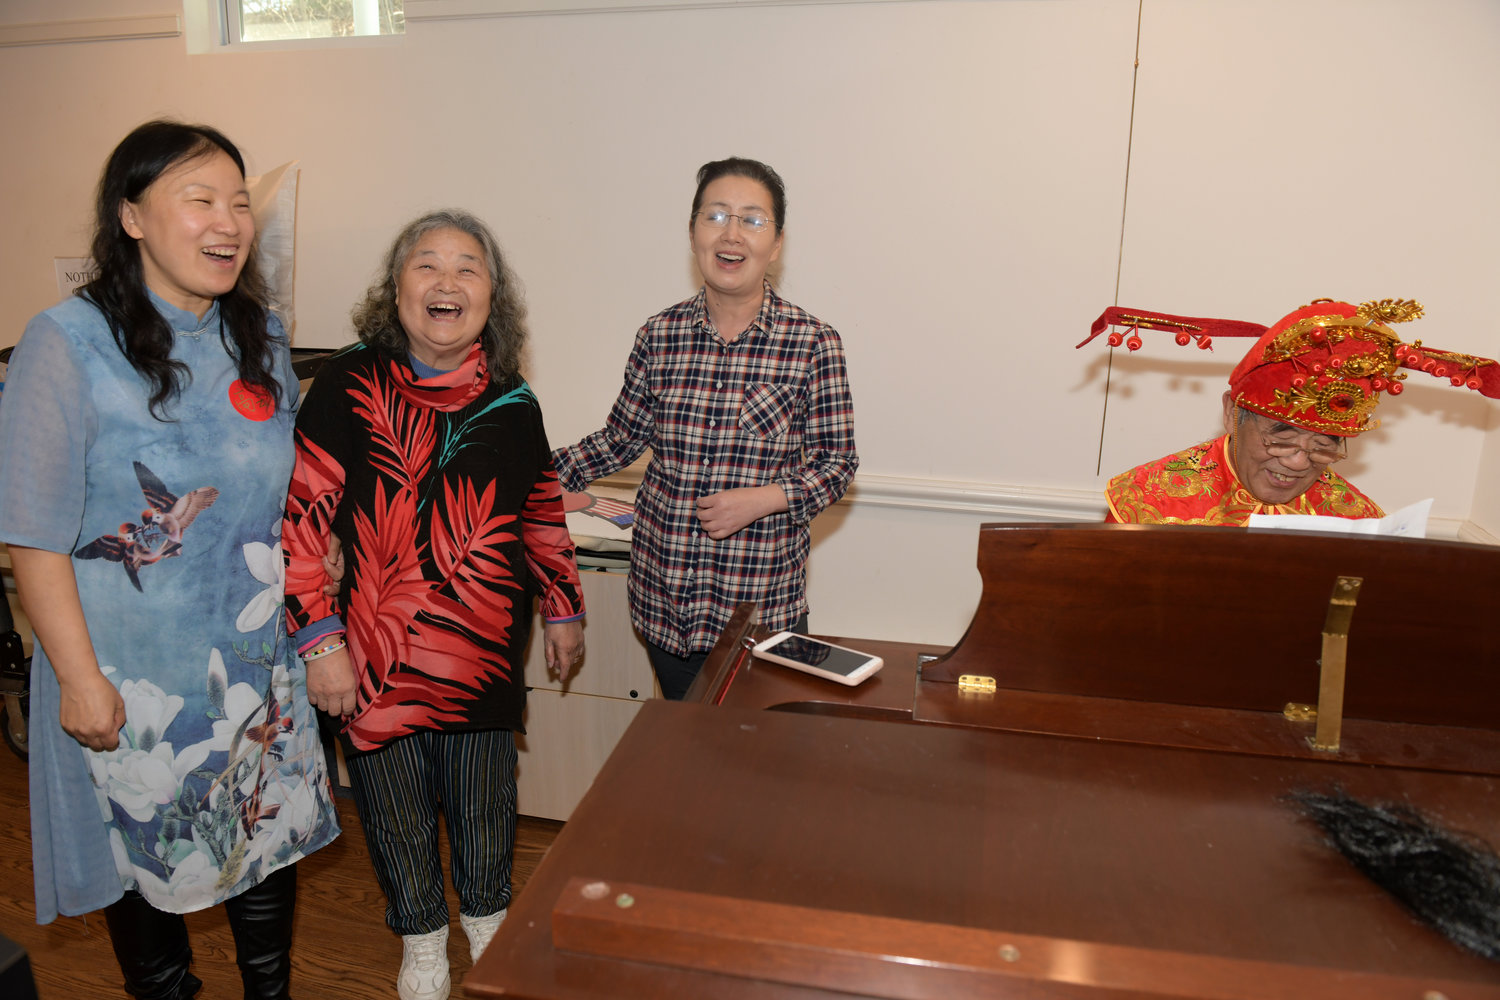 The celebration would not have been complete without the singing of traditional Chinese songs, which were provided by Yun Dimarzo, left, Yun Ping Wang and Wendy Hau who were accompanied by Chang Ming Gao.